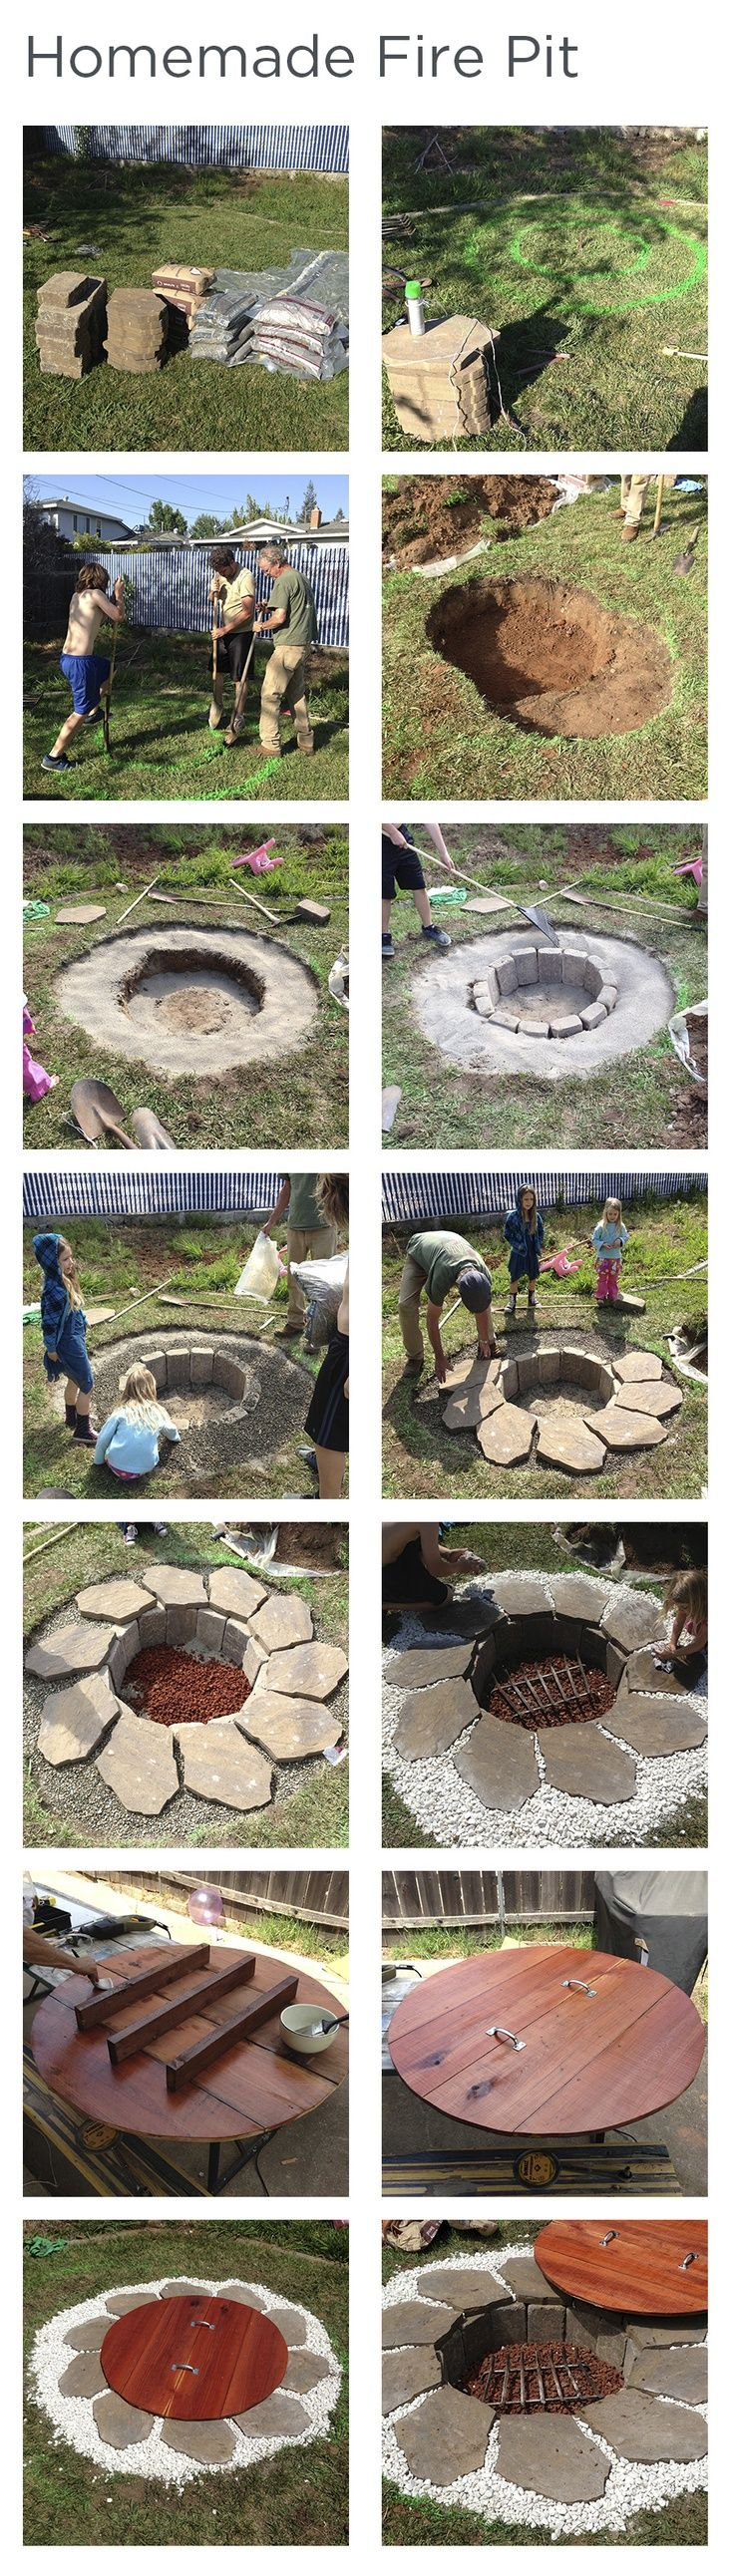 homemade-fire-pit